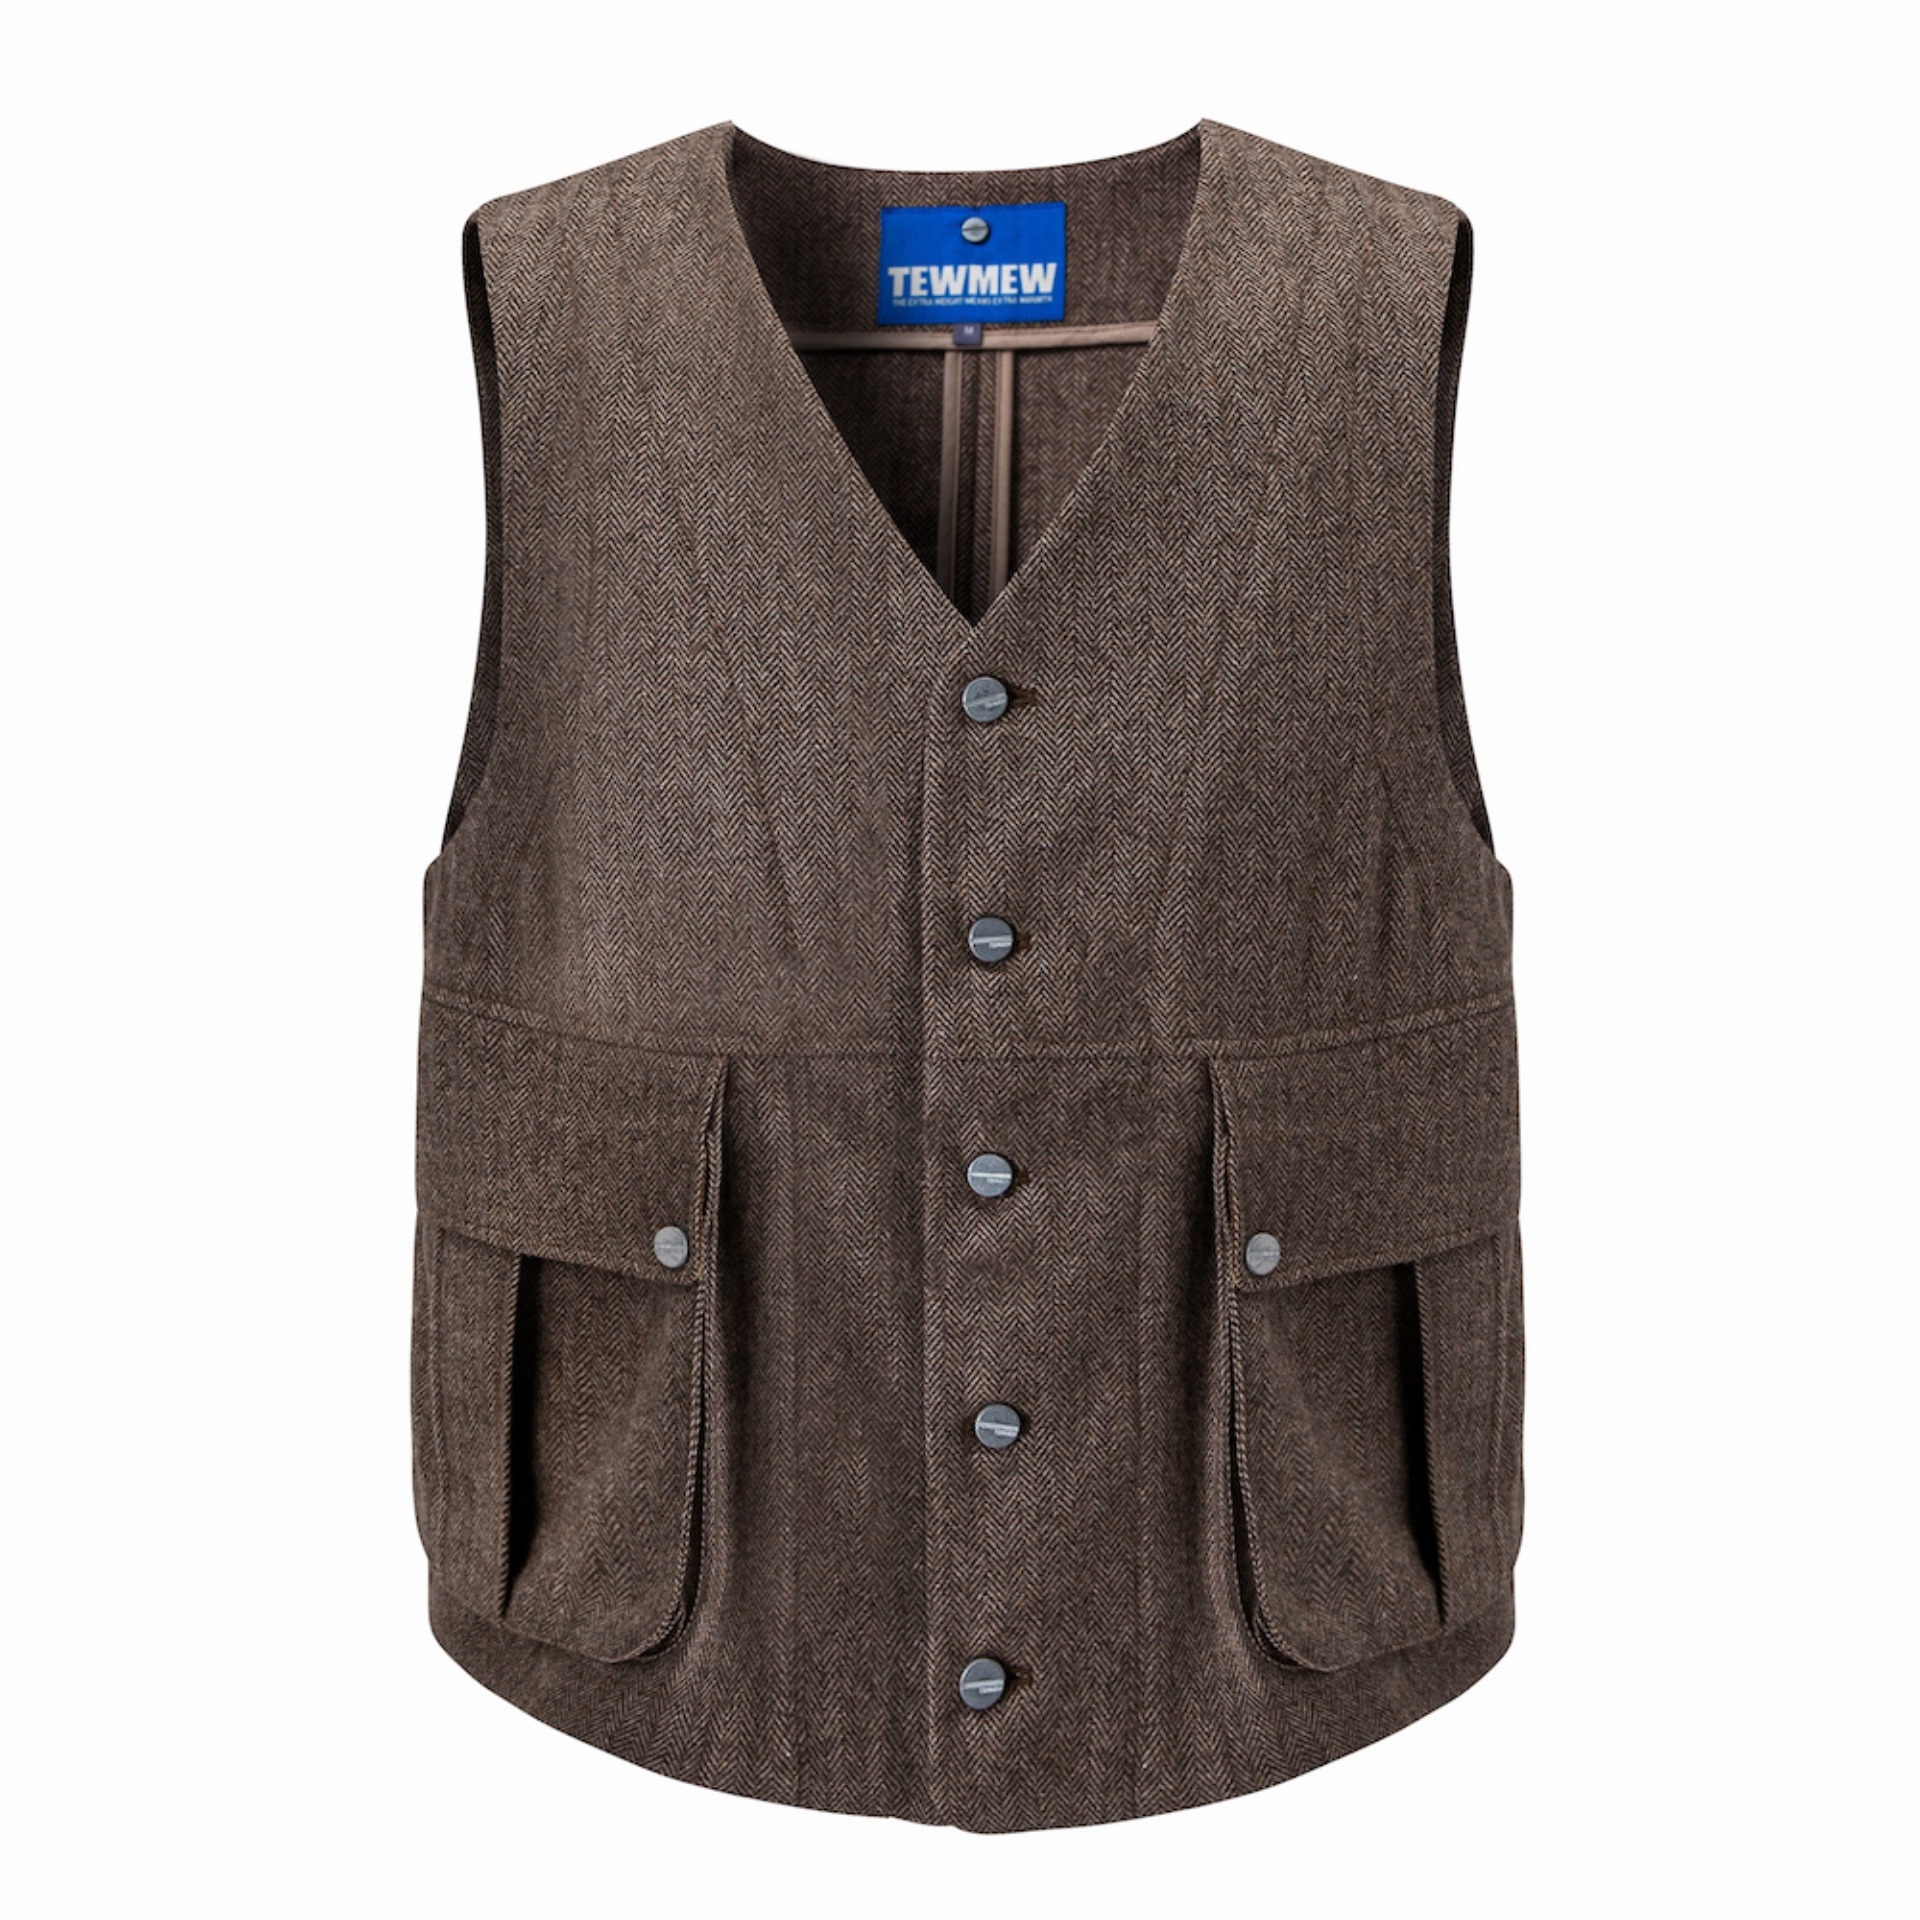 HRB HEAVY WORK VEST (Brown)